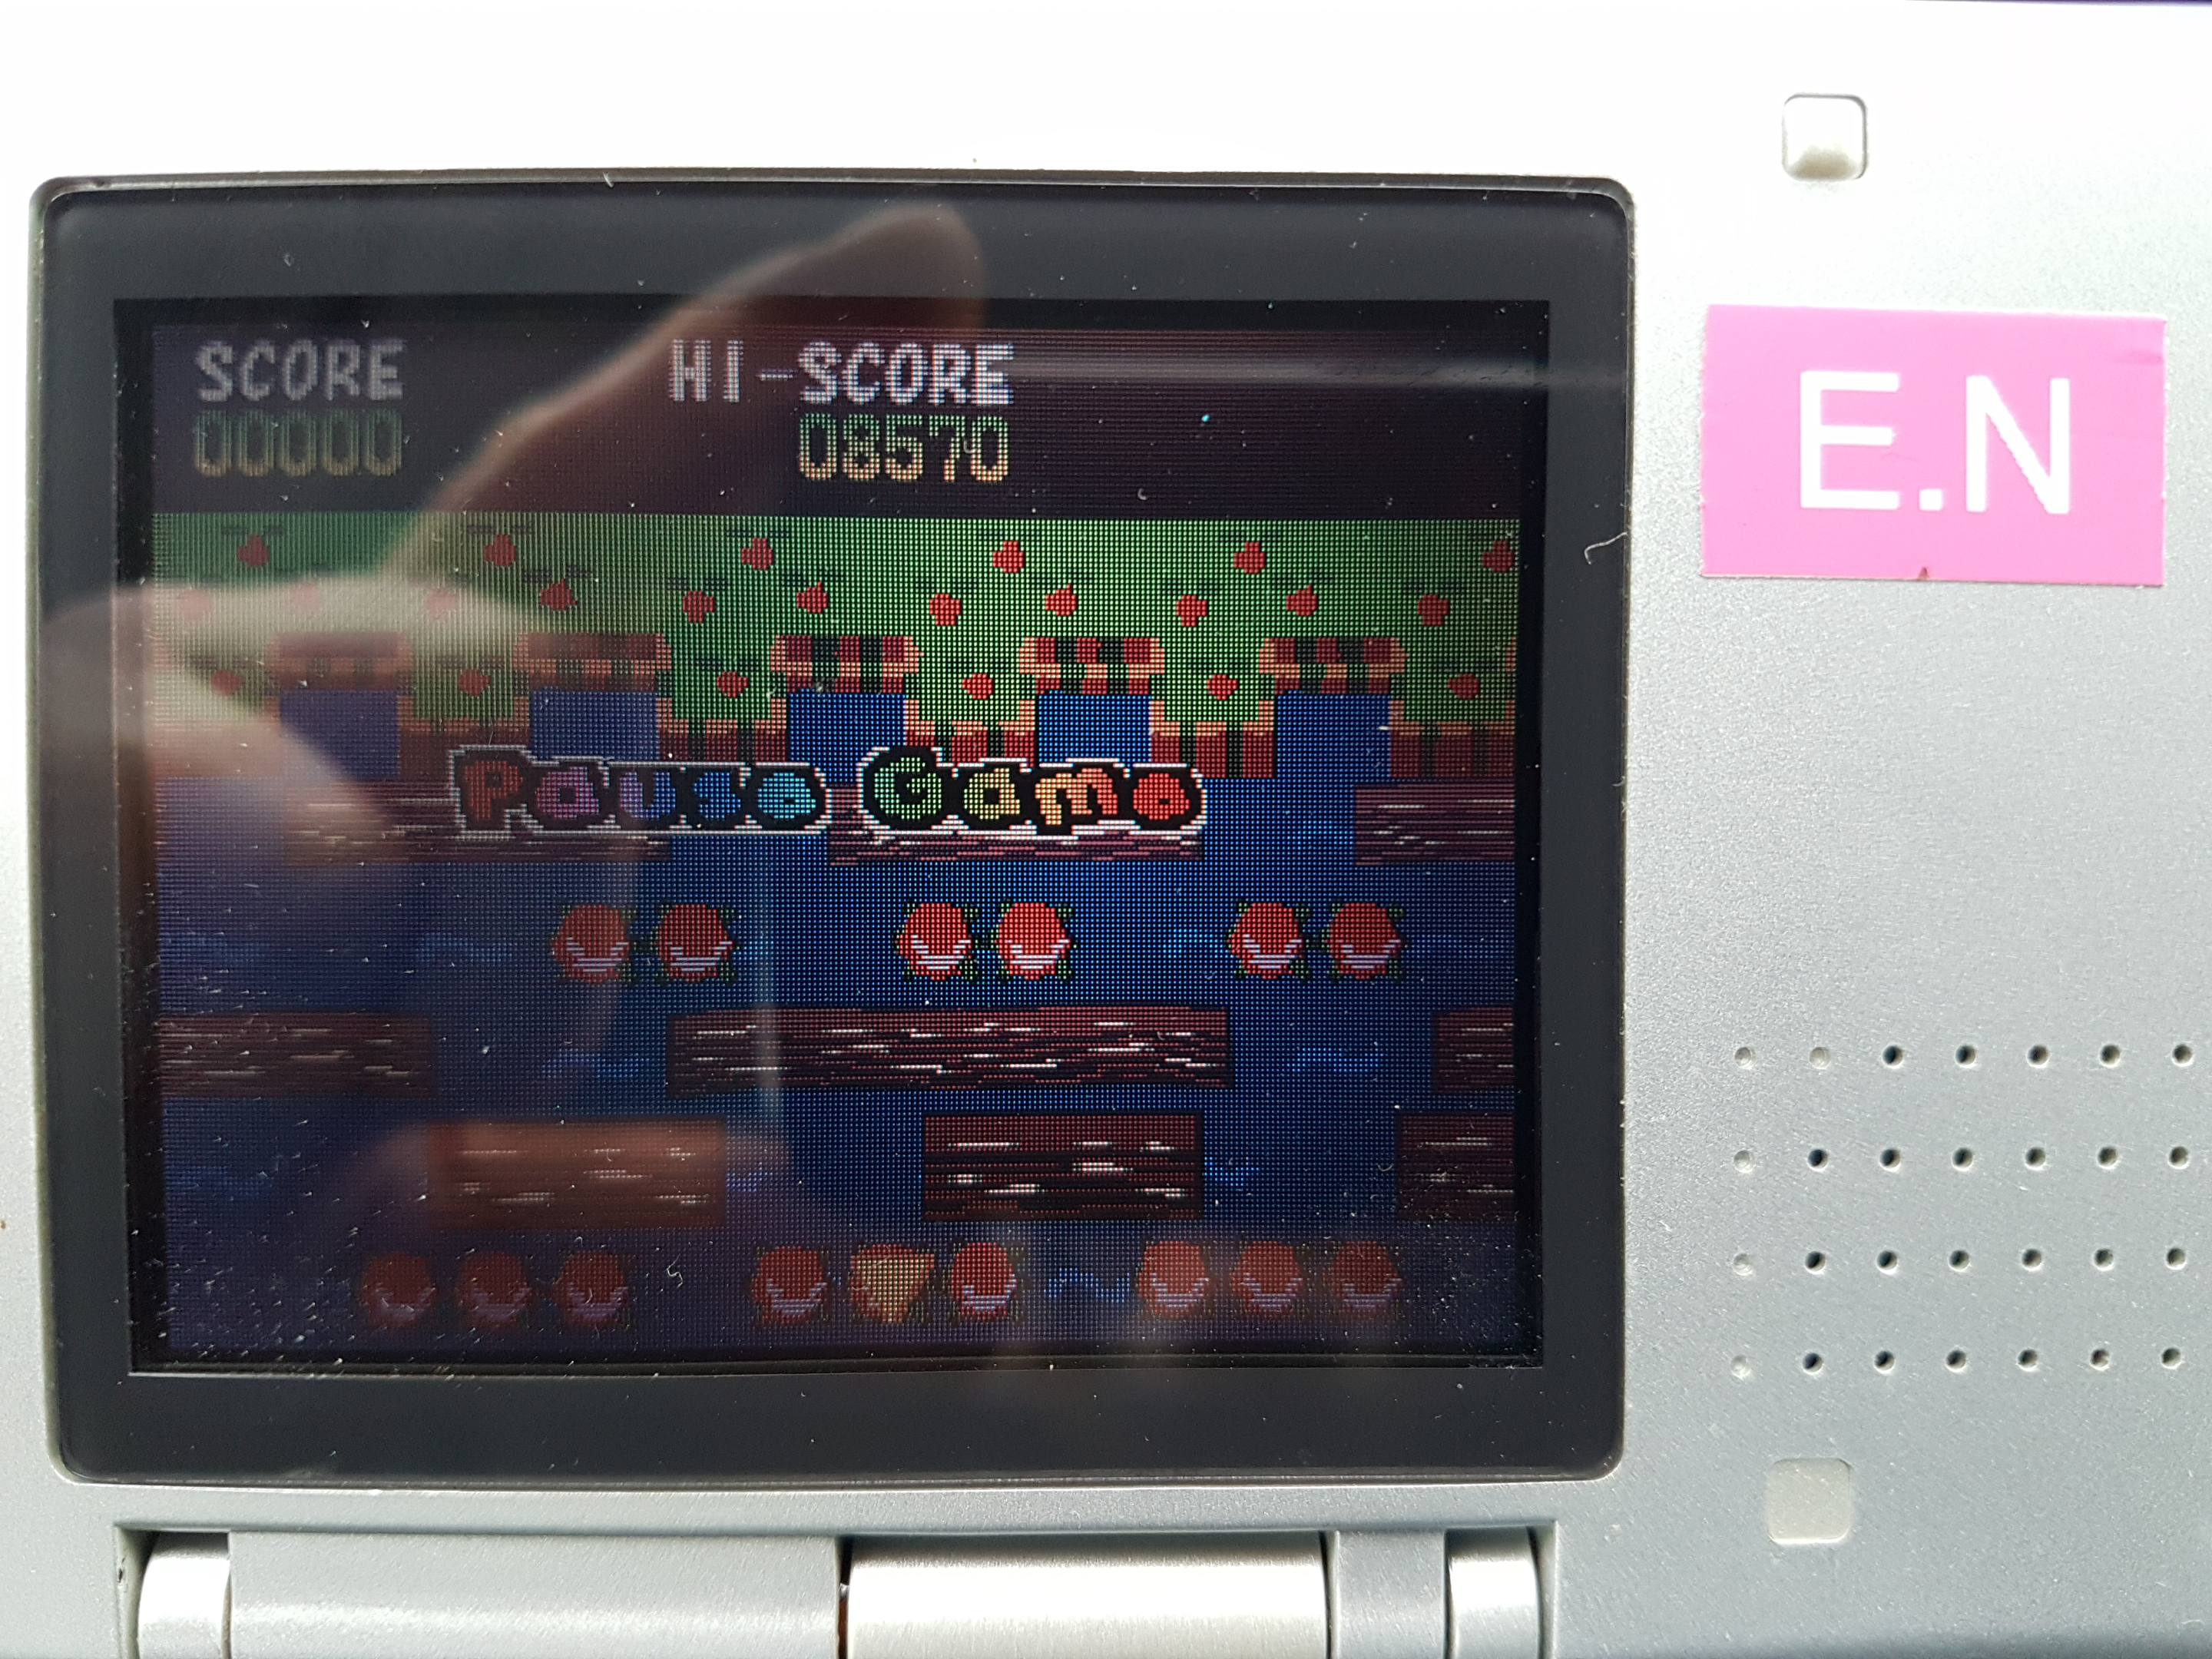 EddieNiceguy: Frogger Helmet Chaos: Mini Games: Frogger Classic (Nintendo DS) 8,570 points on 2019-02-08 05:44:10